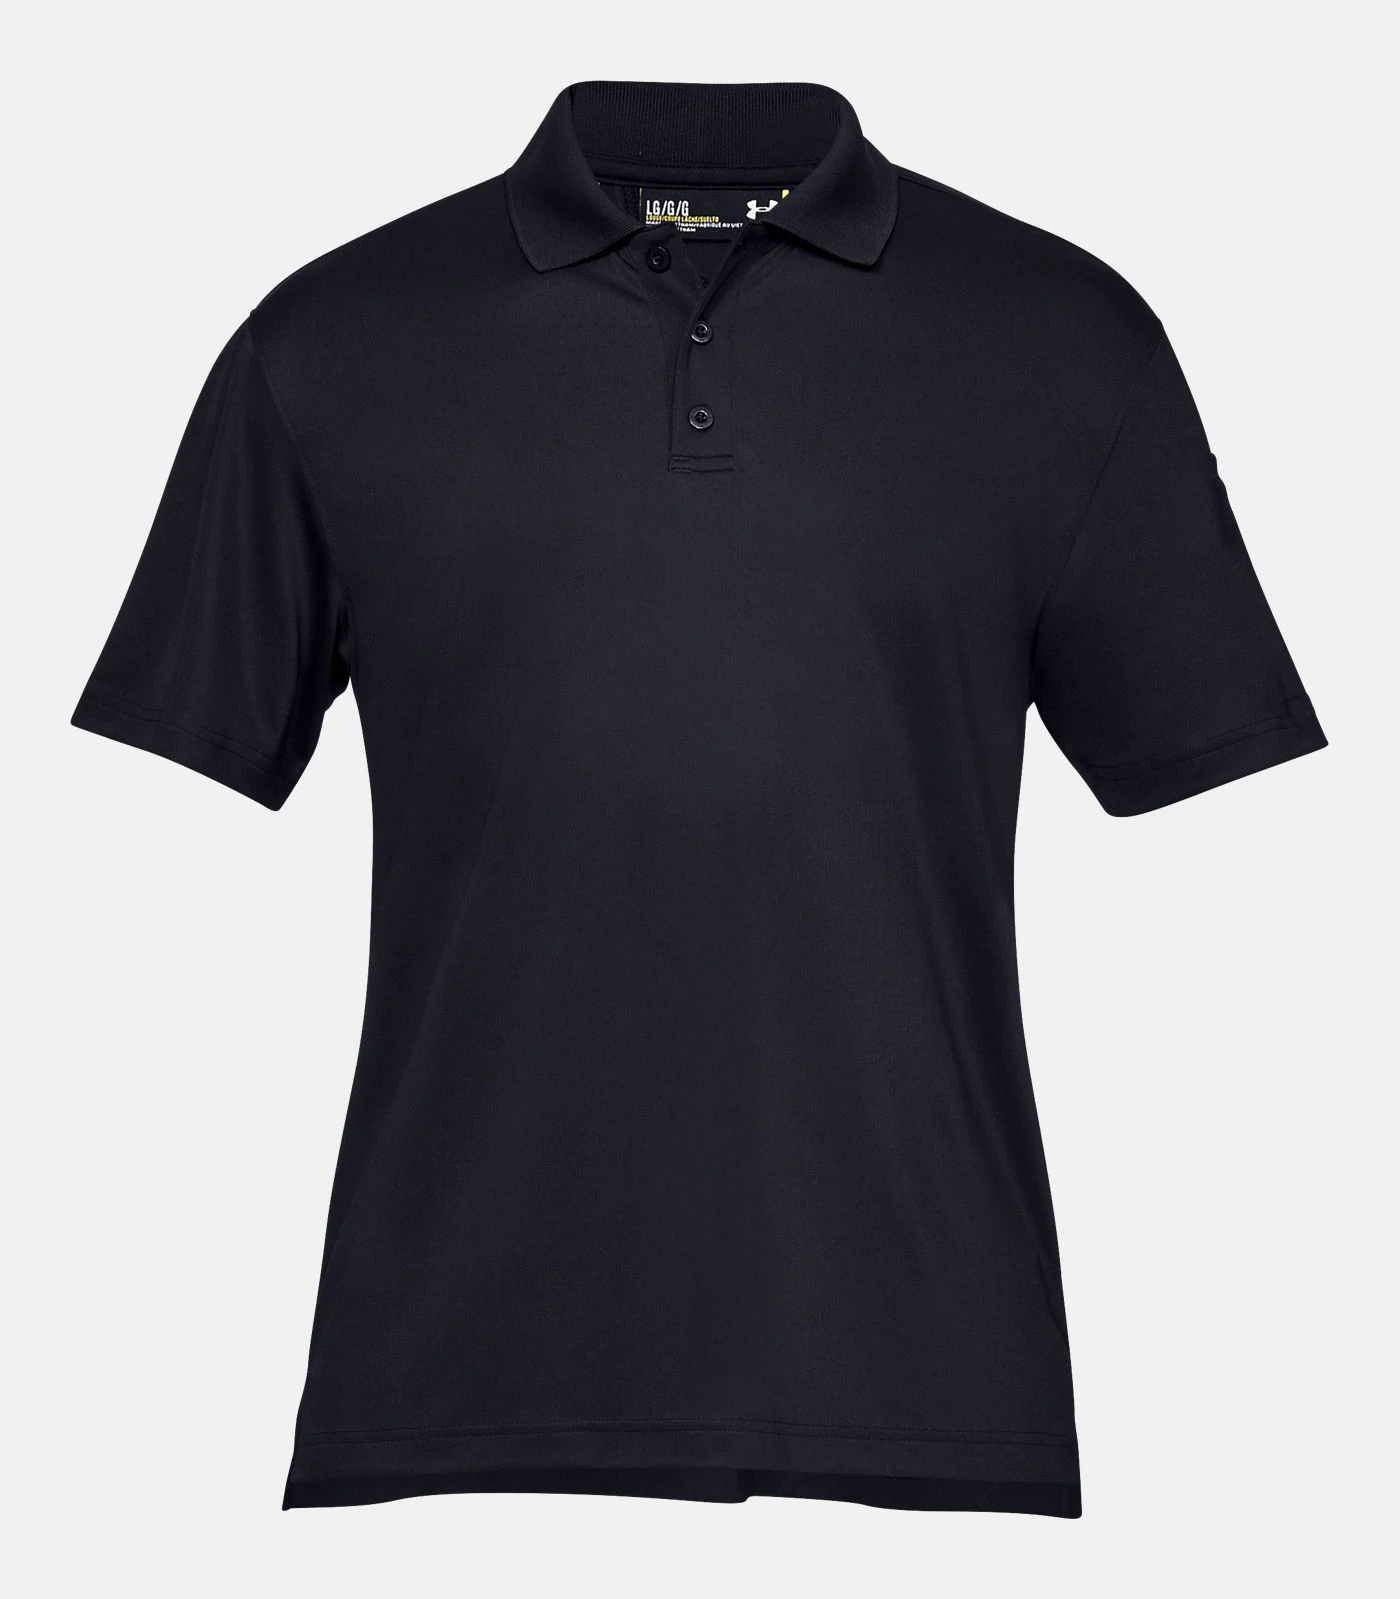 MENS_POLO_TacPerformance-SS_UAR1279759001_05